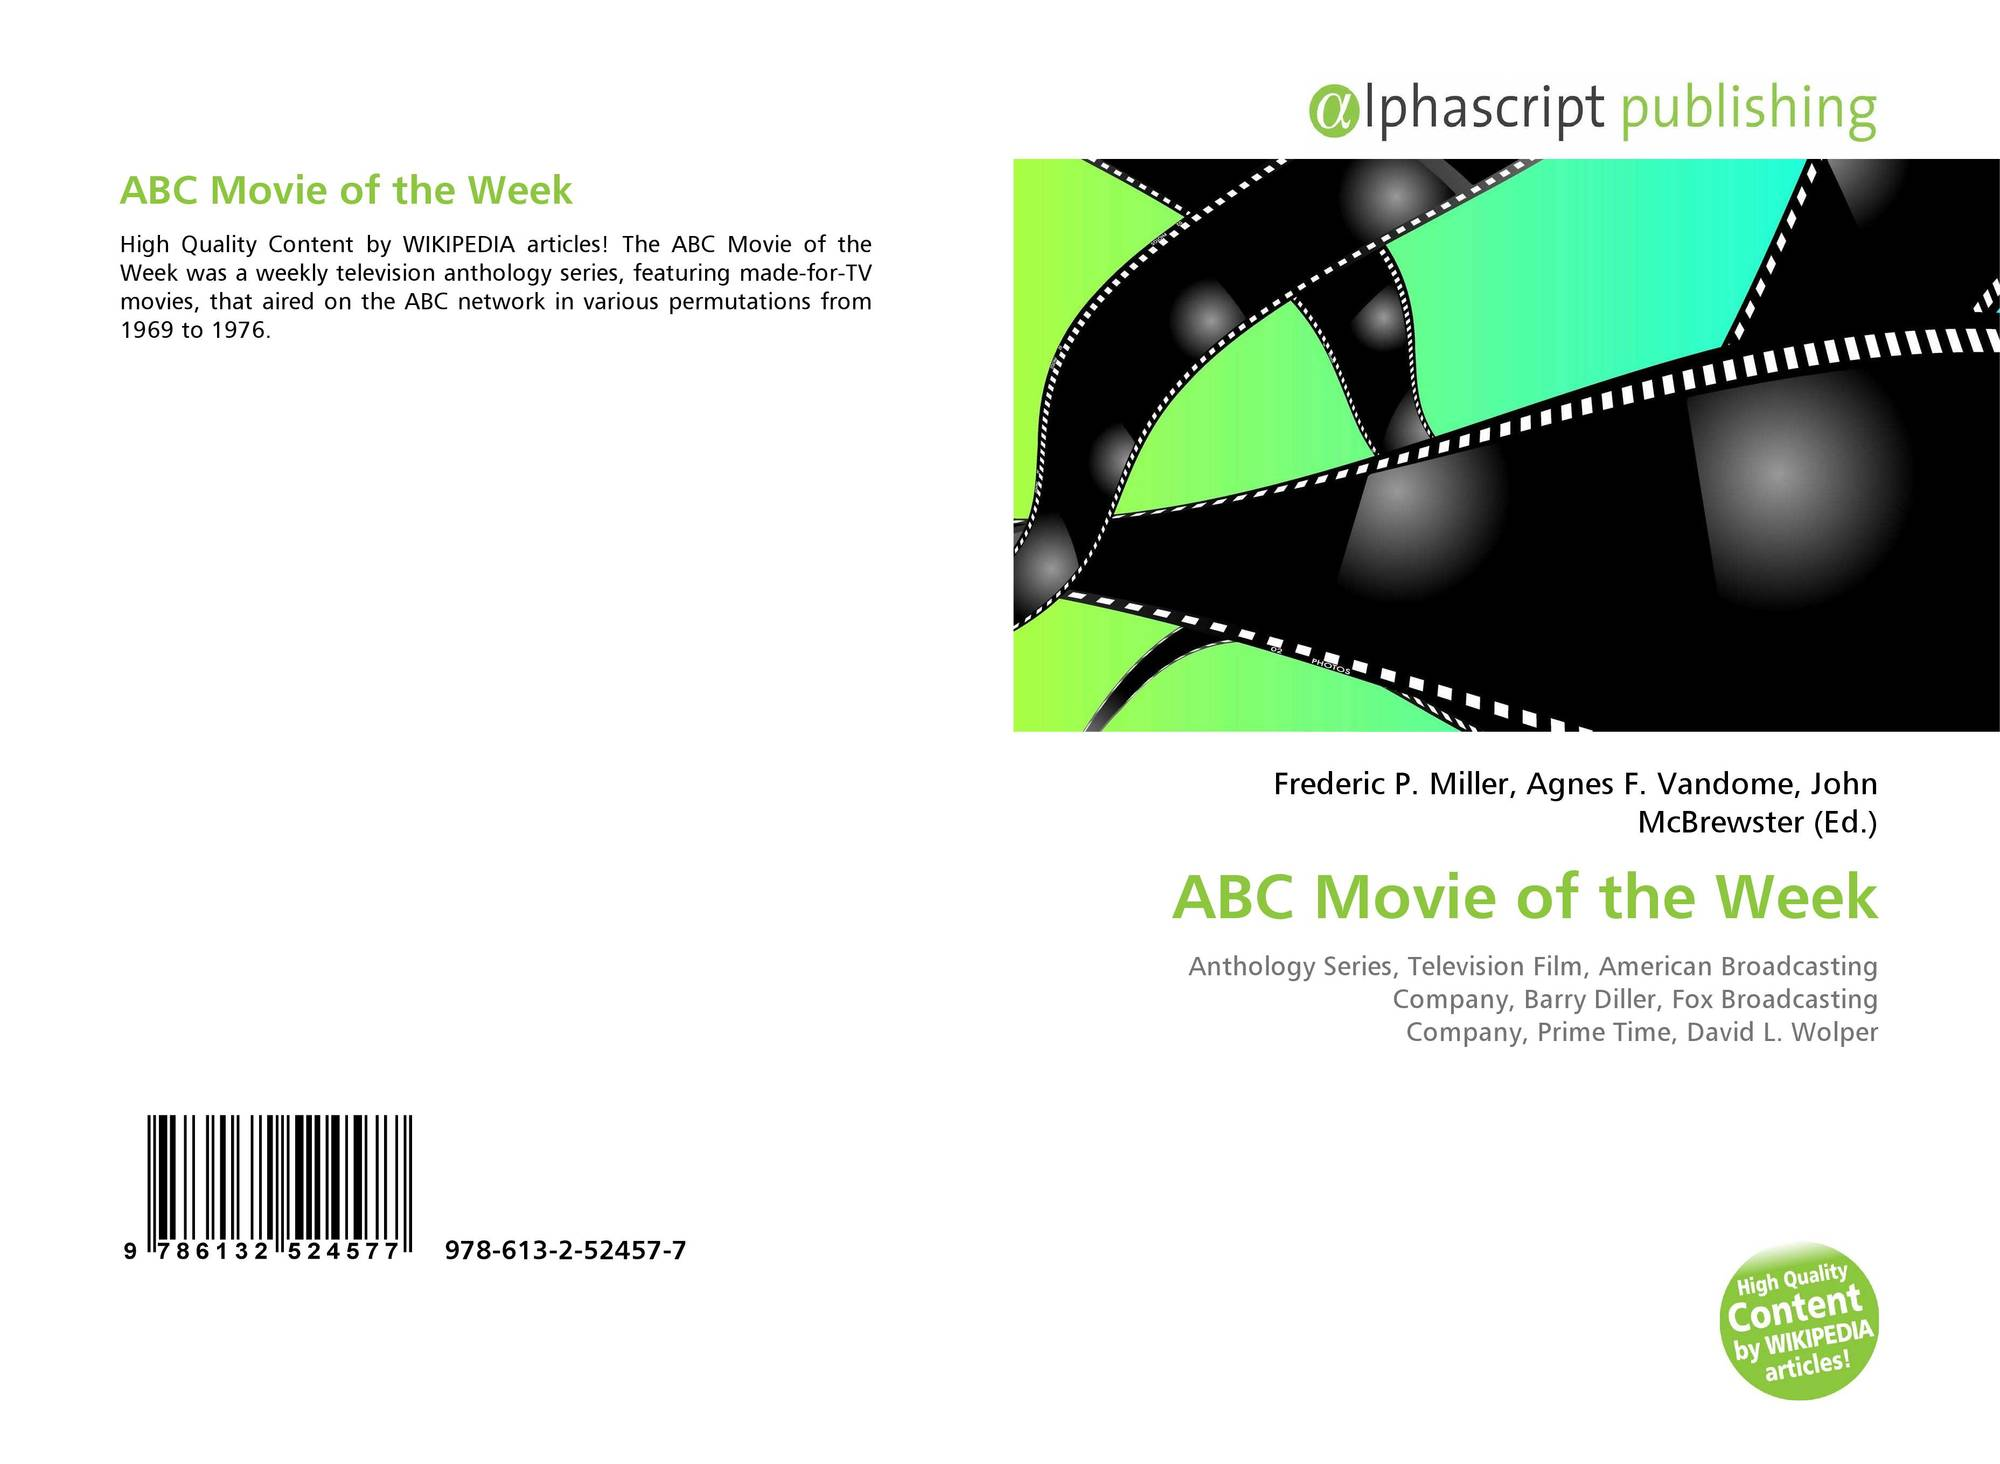 ABC Movie of the Week, 978-613-2-52457-7, 6132524576